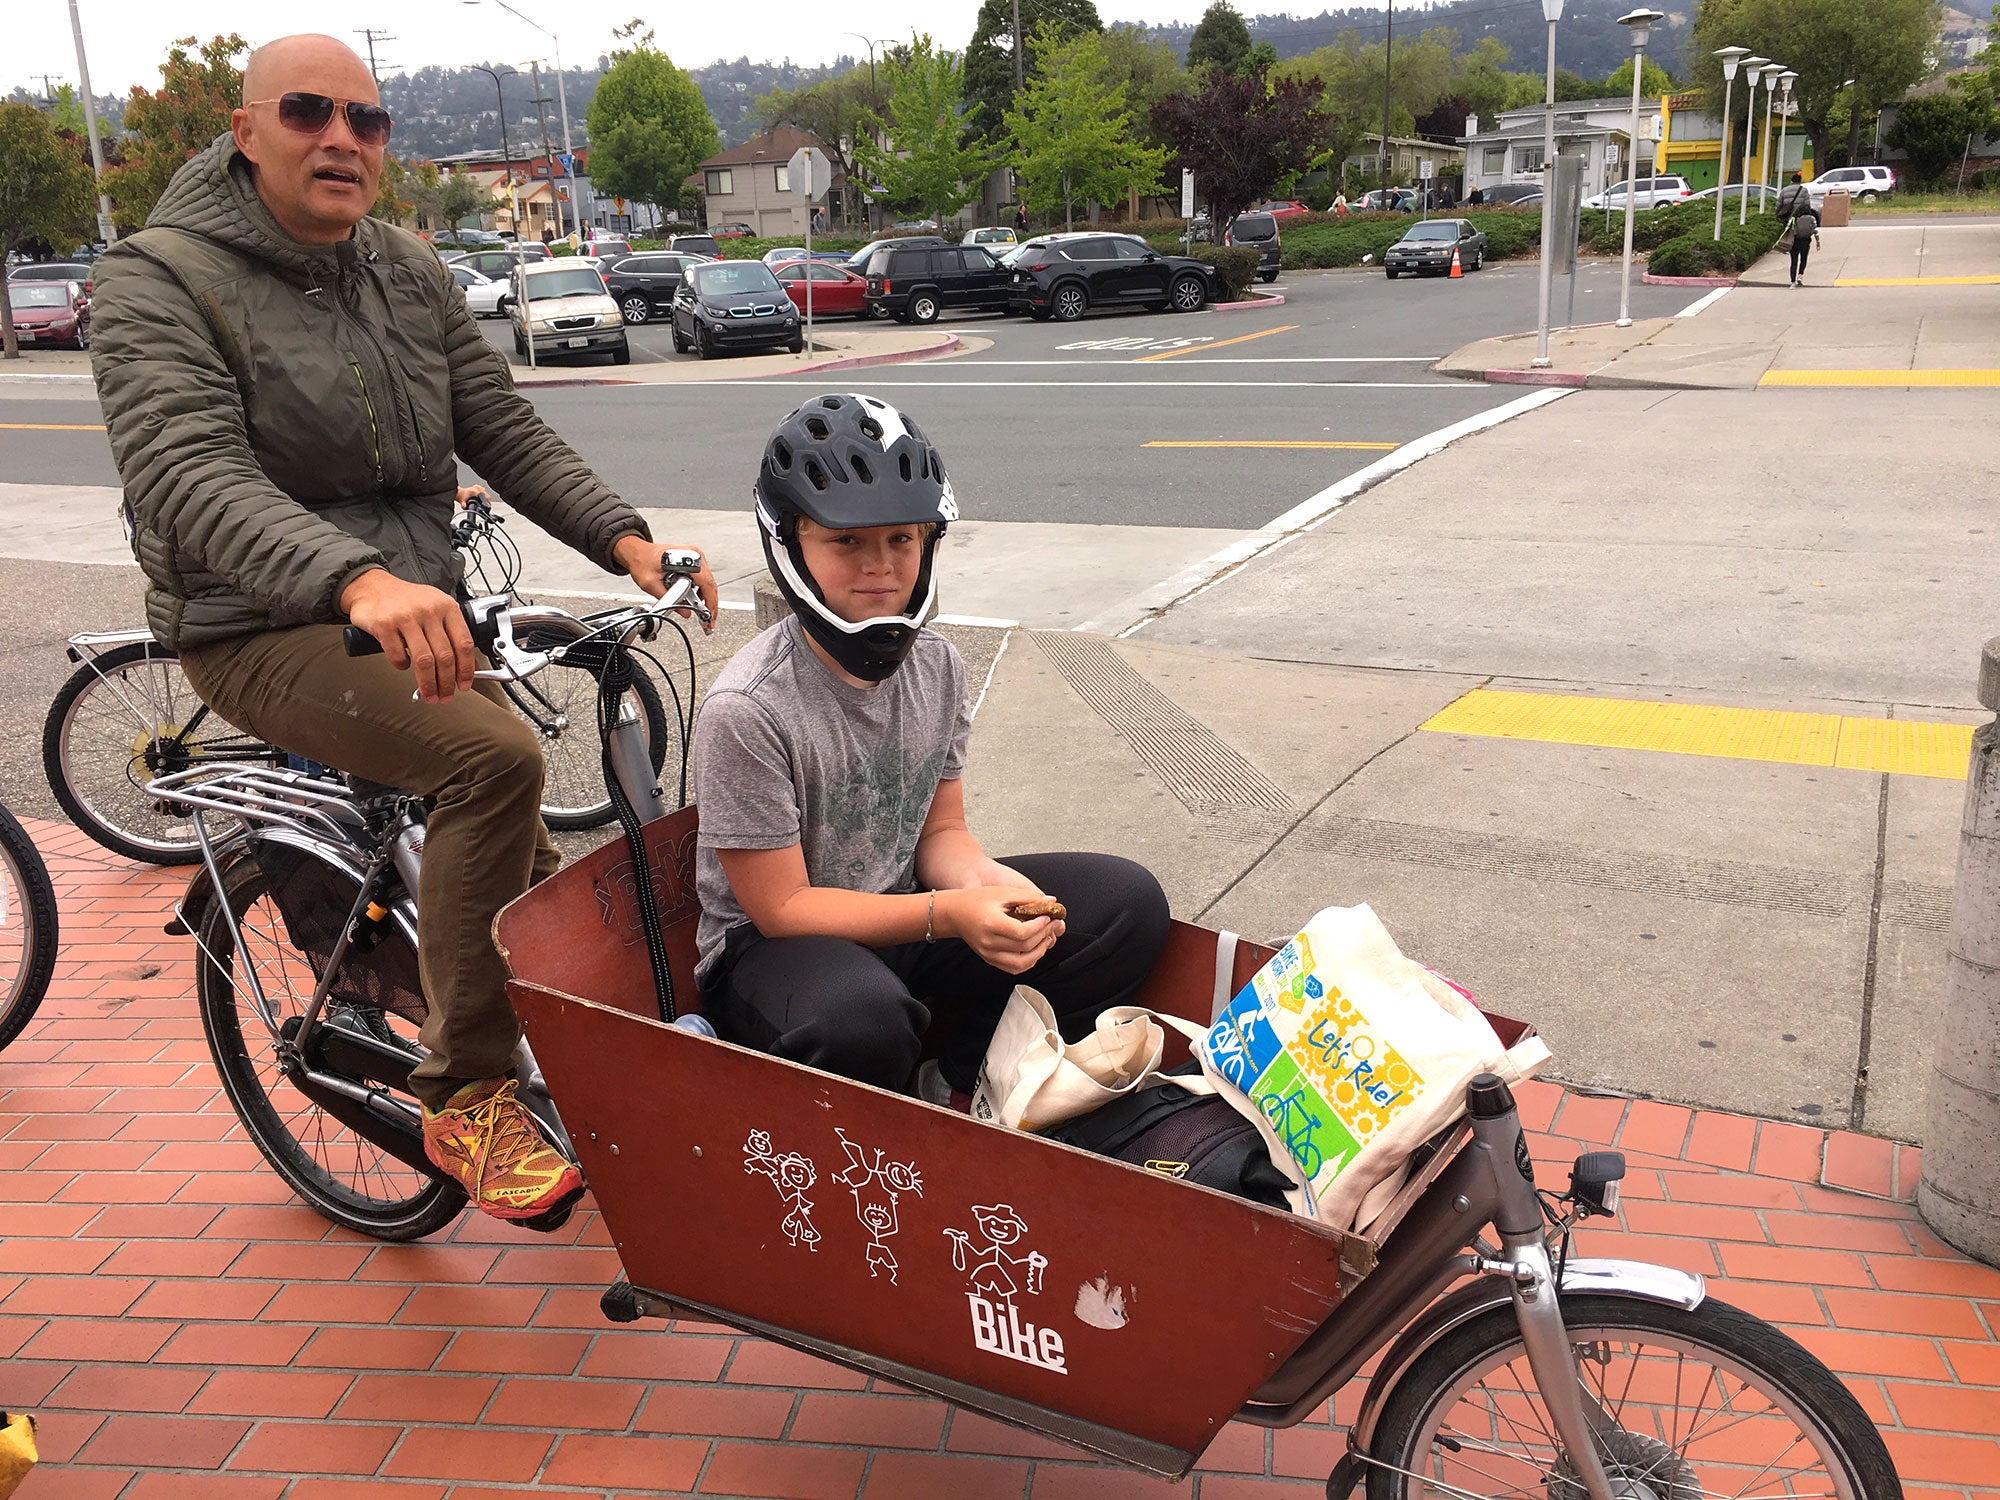 A dad shows off his creative child transport system at the North Berkeley BART Energizer Station.